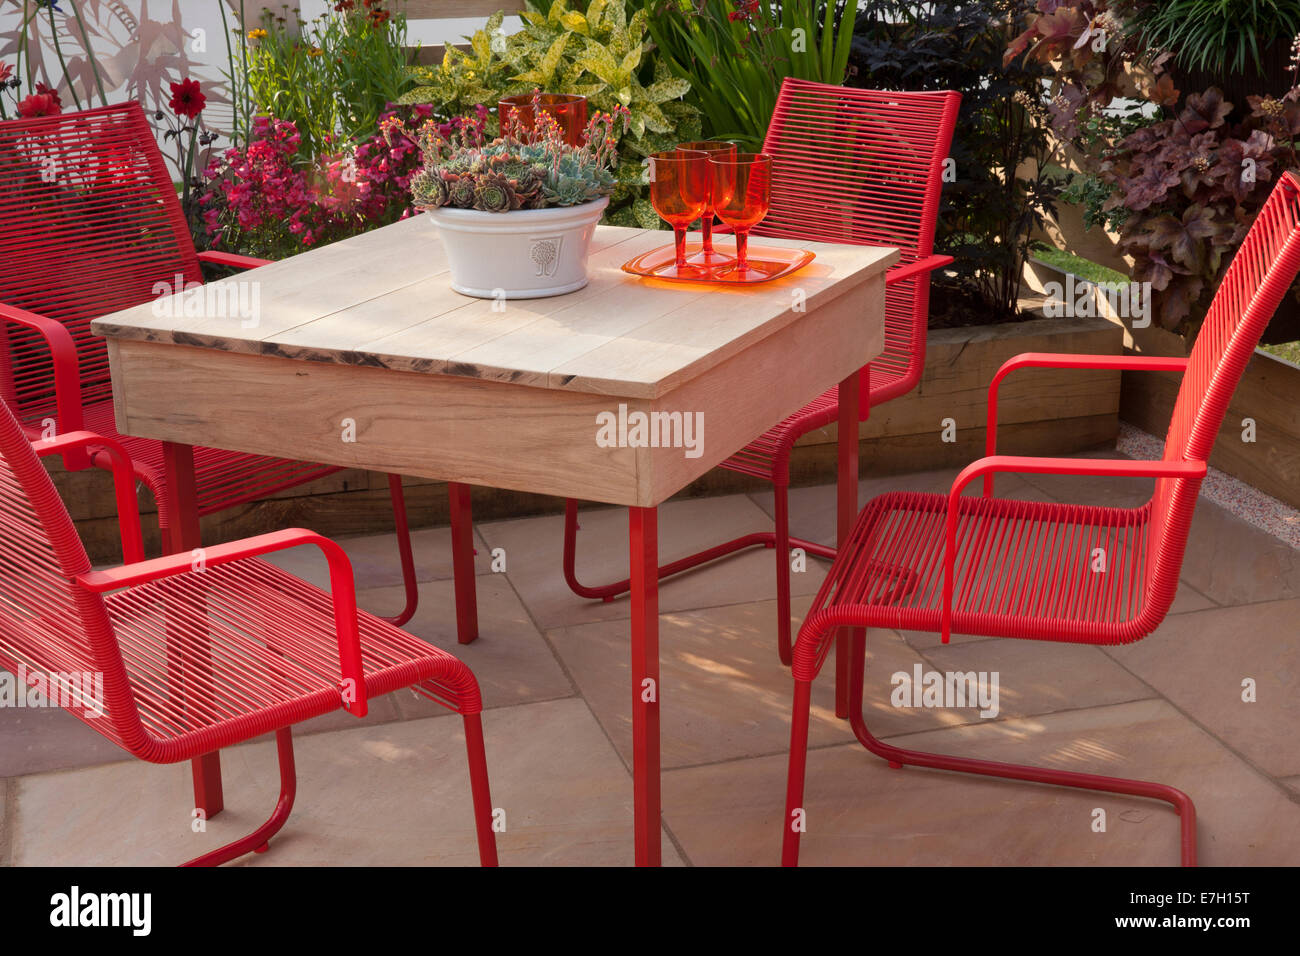 Garden - The Narrows - patio with table and red chairs plant pot with sempervivum - Designer - Pip Probert - Stock Photo